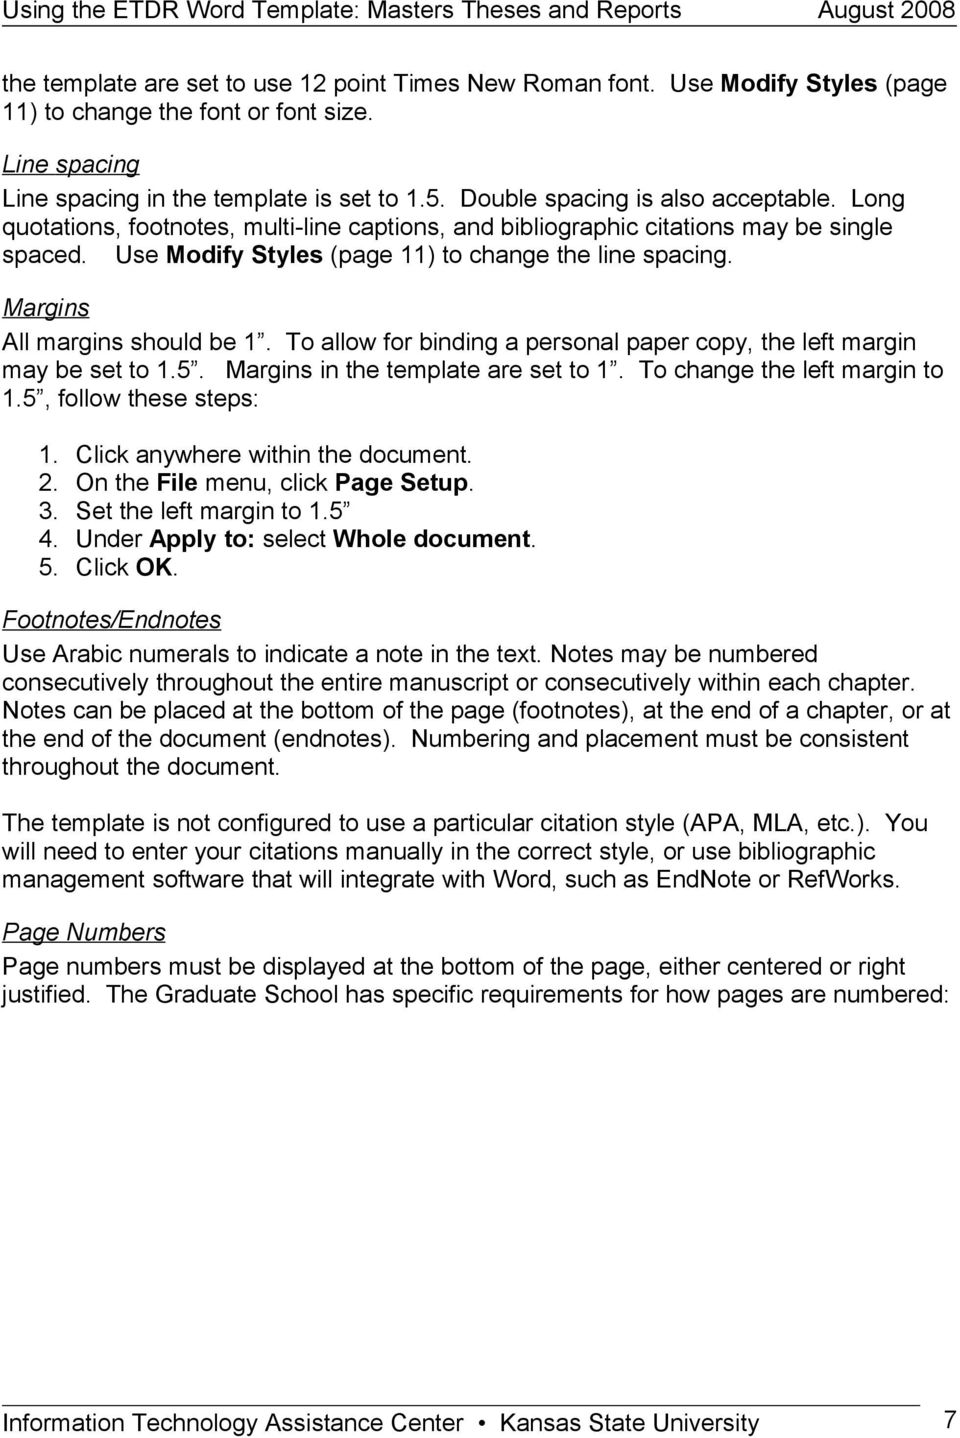 Margins All margins should be 1. To allow for binding a personal paper copy, the left margin may be set to 1.5. Margins in the template are set to 1. To change the left margin to 1.